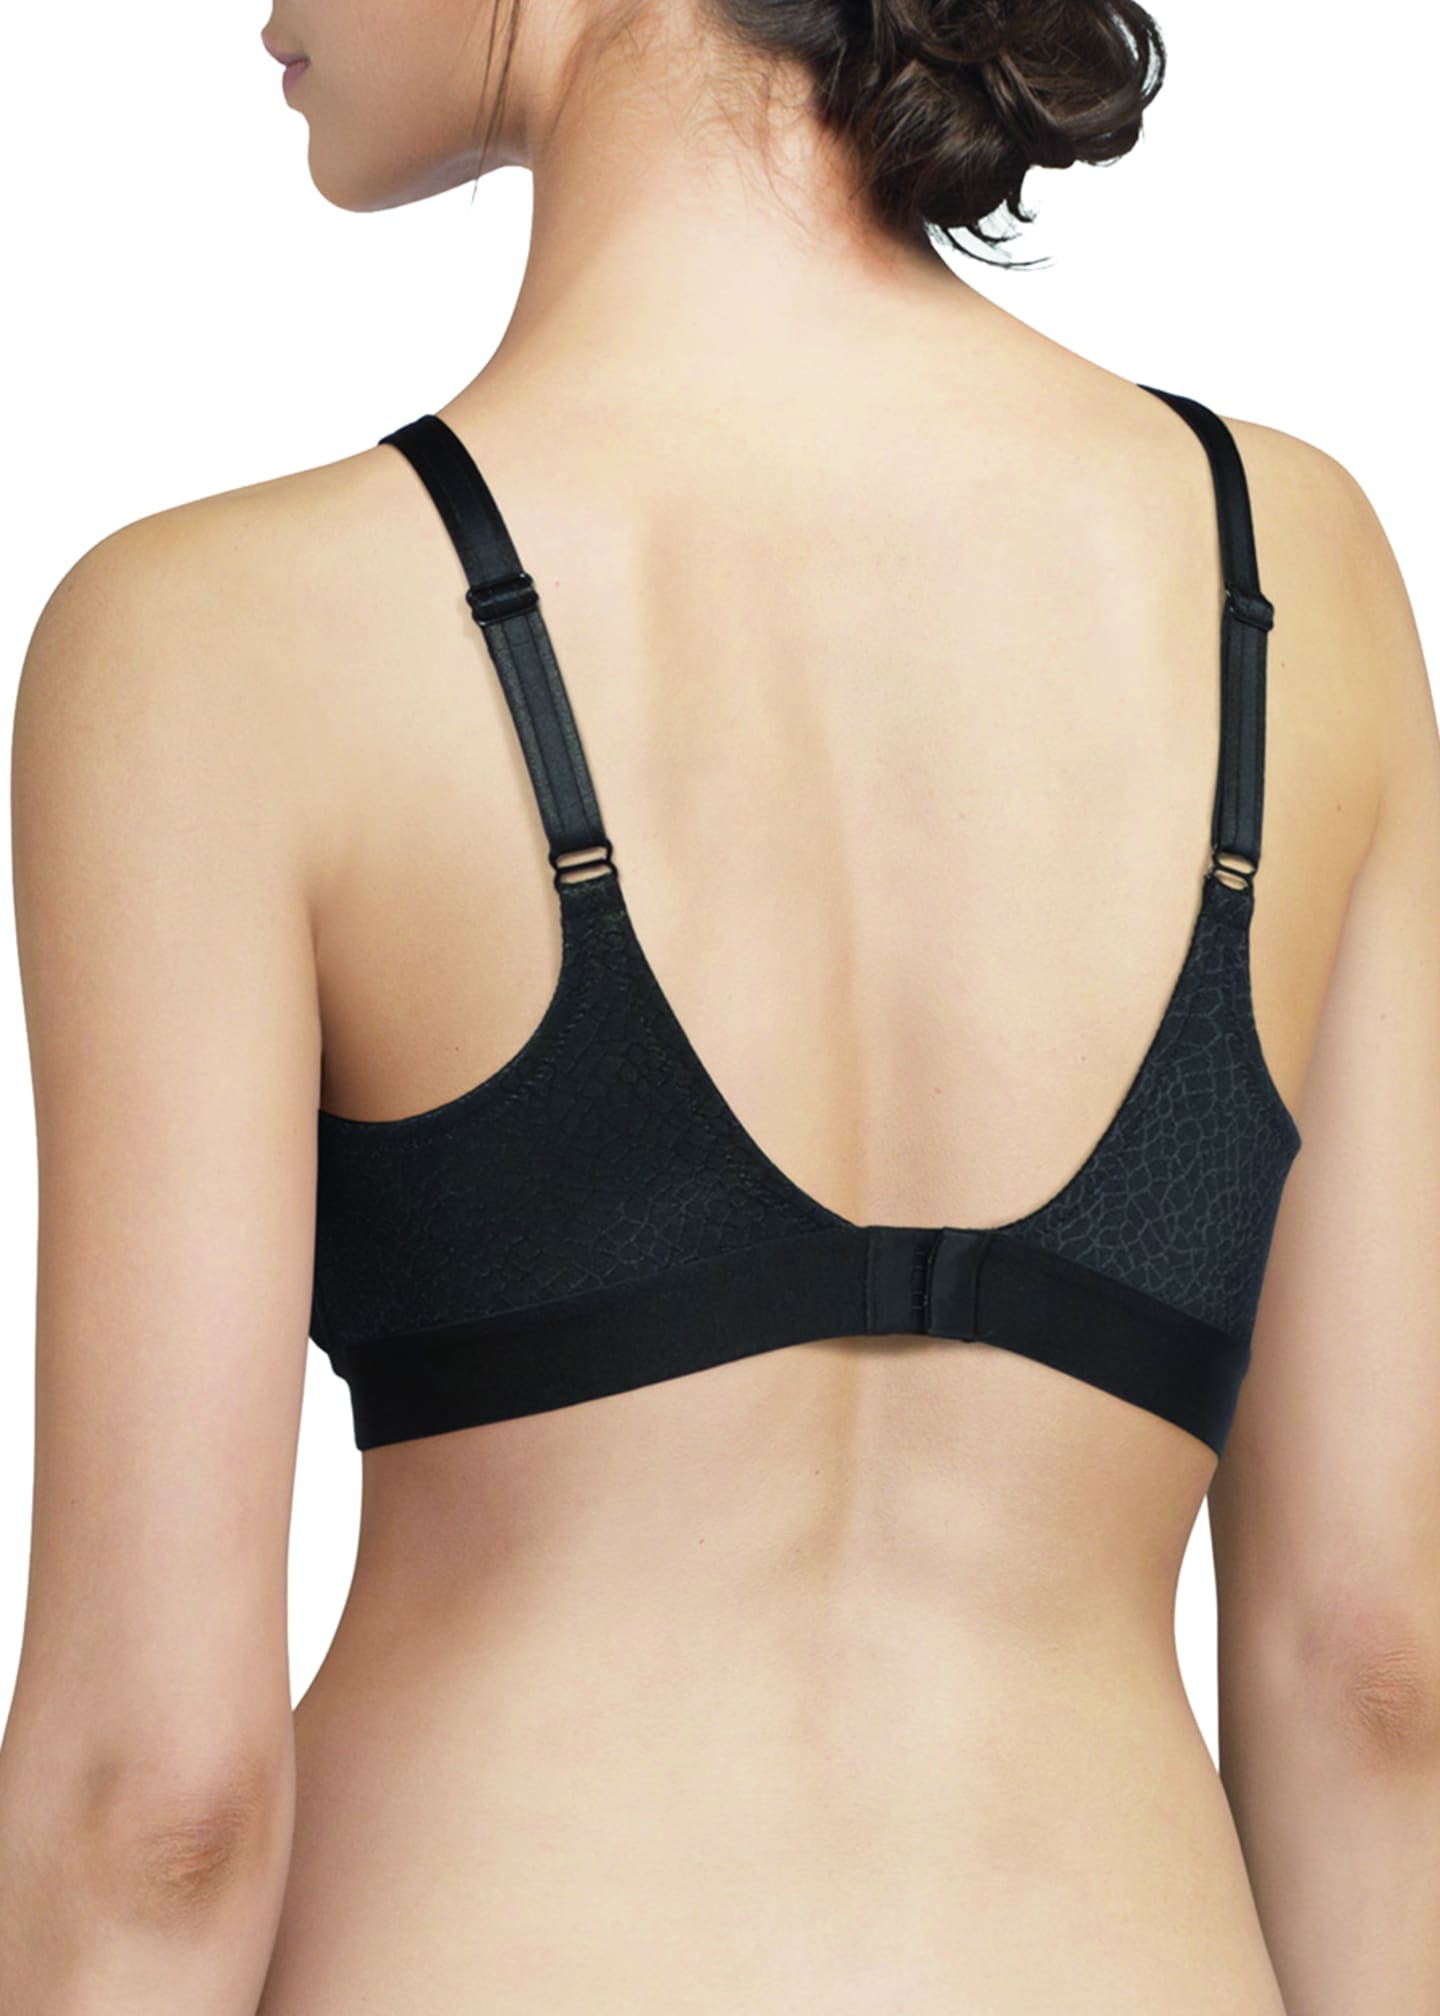 Image 2 of 2: C Magnifique Full-Cup Wireless Bra